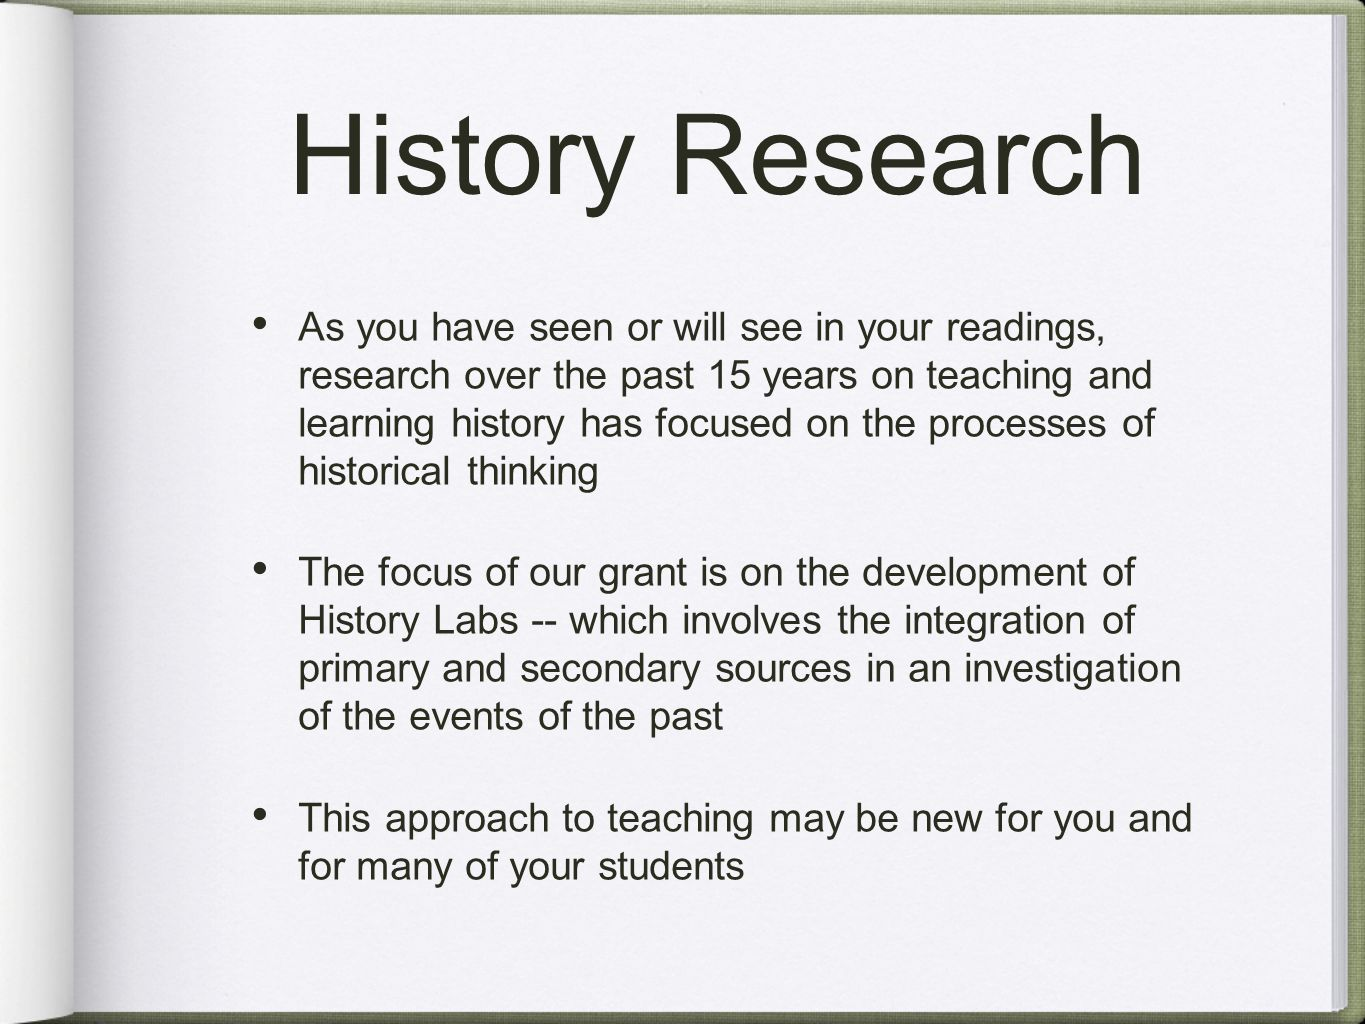 History Research As you have seen or will see in your readings, research over the past 15 years on teaching and learning history has focused on the processes of historical thinking The focus of our grant is on the development of History Labs -- which involves the integration of primary and secondary sources in an investigation of the events of the past This approach to teaching may be new for you and for many of your students